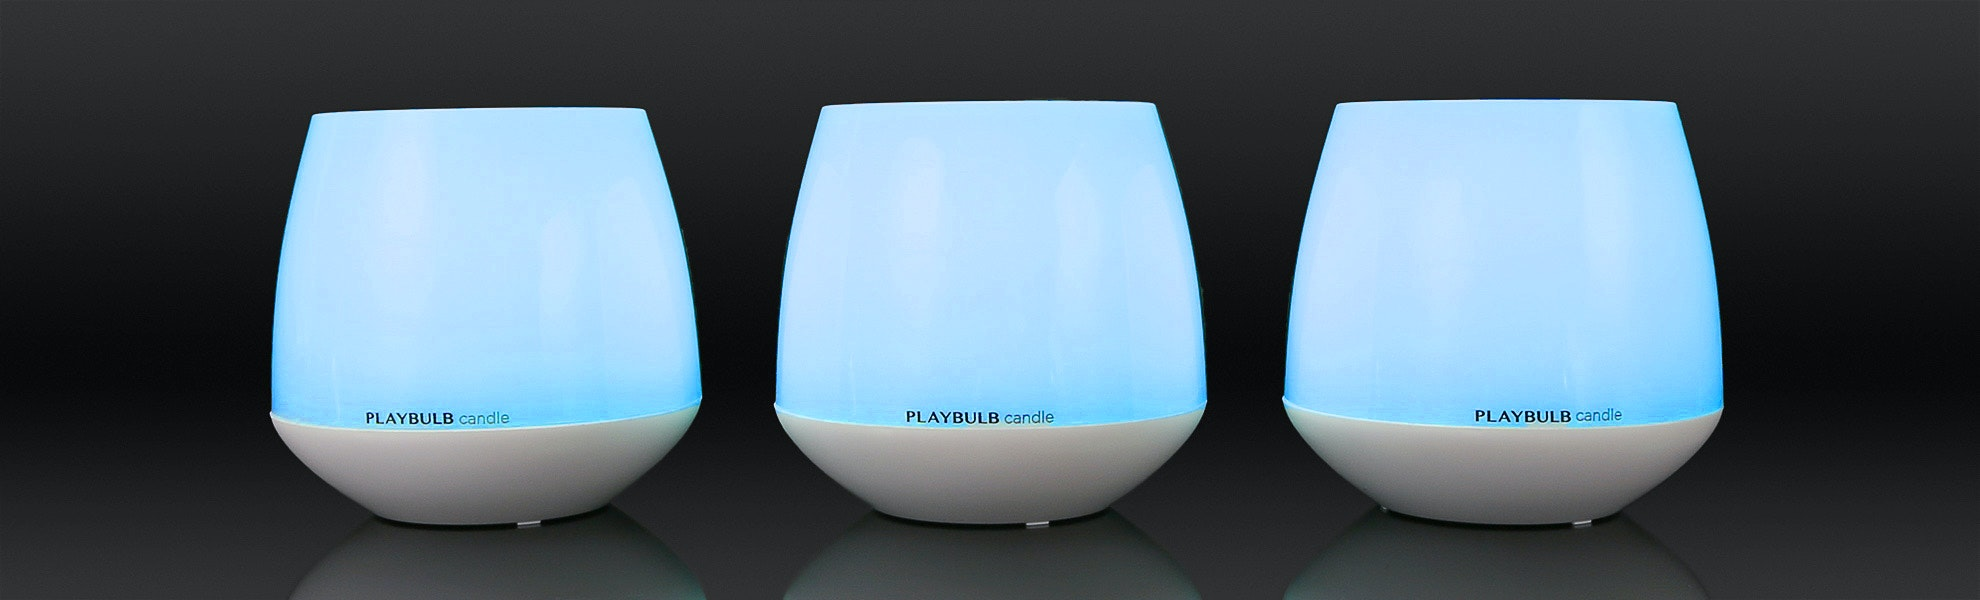 MiPOW Playbulb Candle (3-Pack)